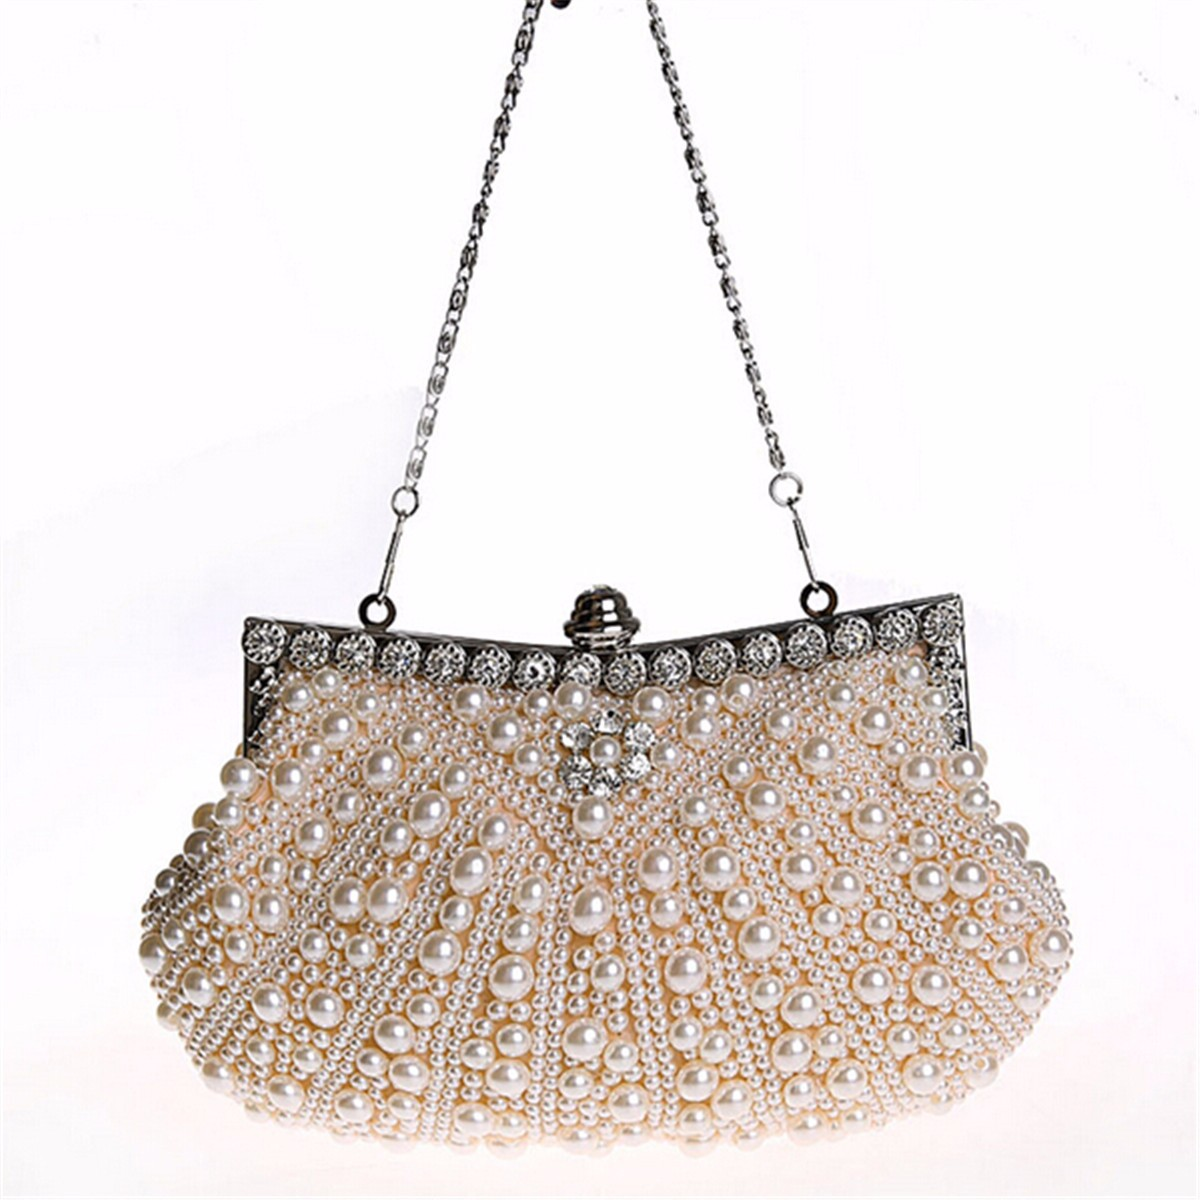 Women Luxury Pearl Handmade Evening Bag Diamond Clutch Bridal Party Handbags